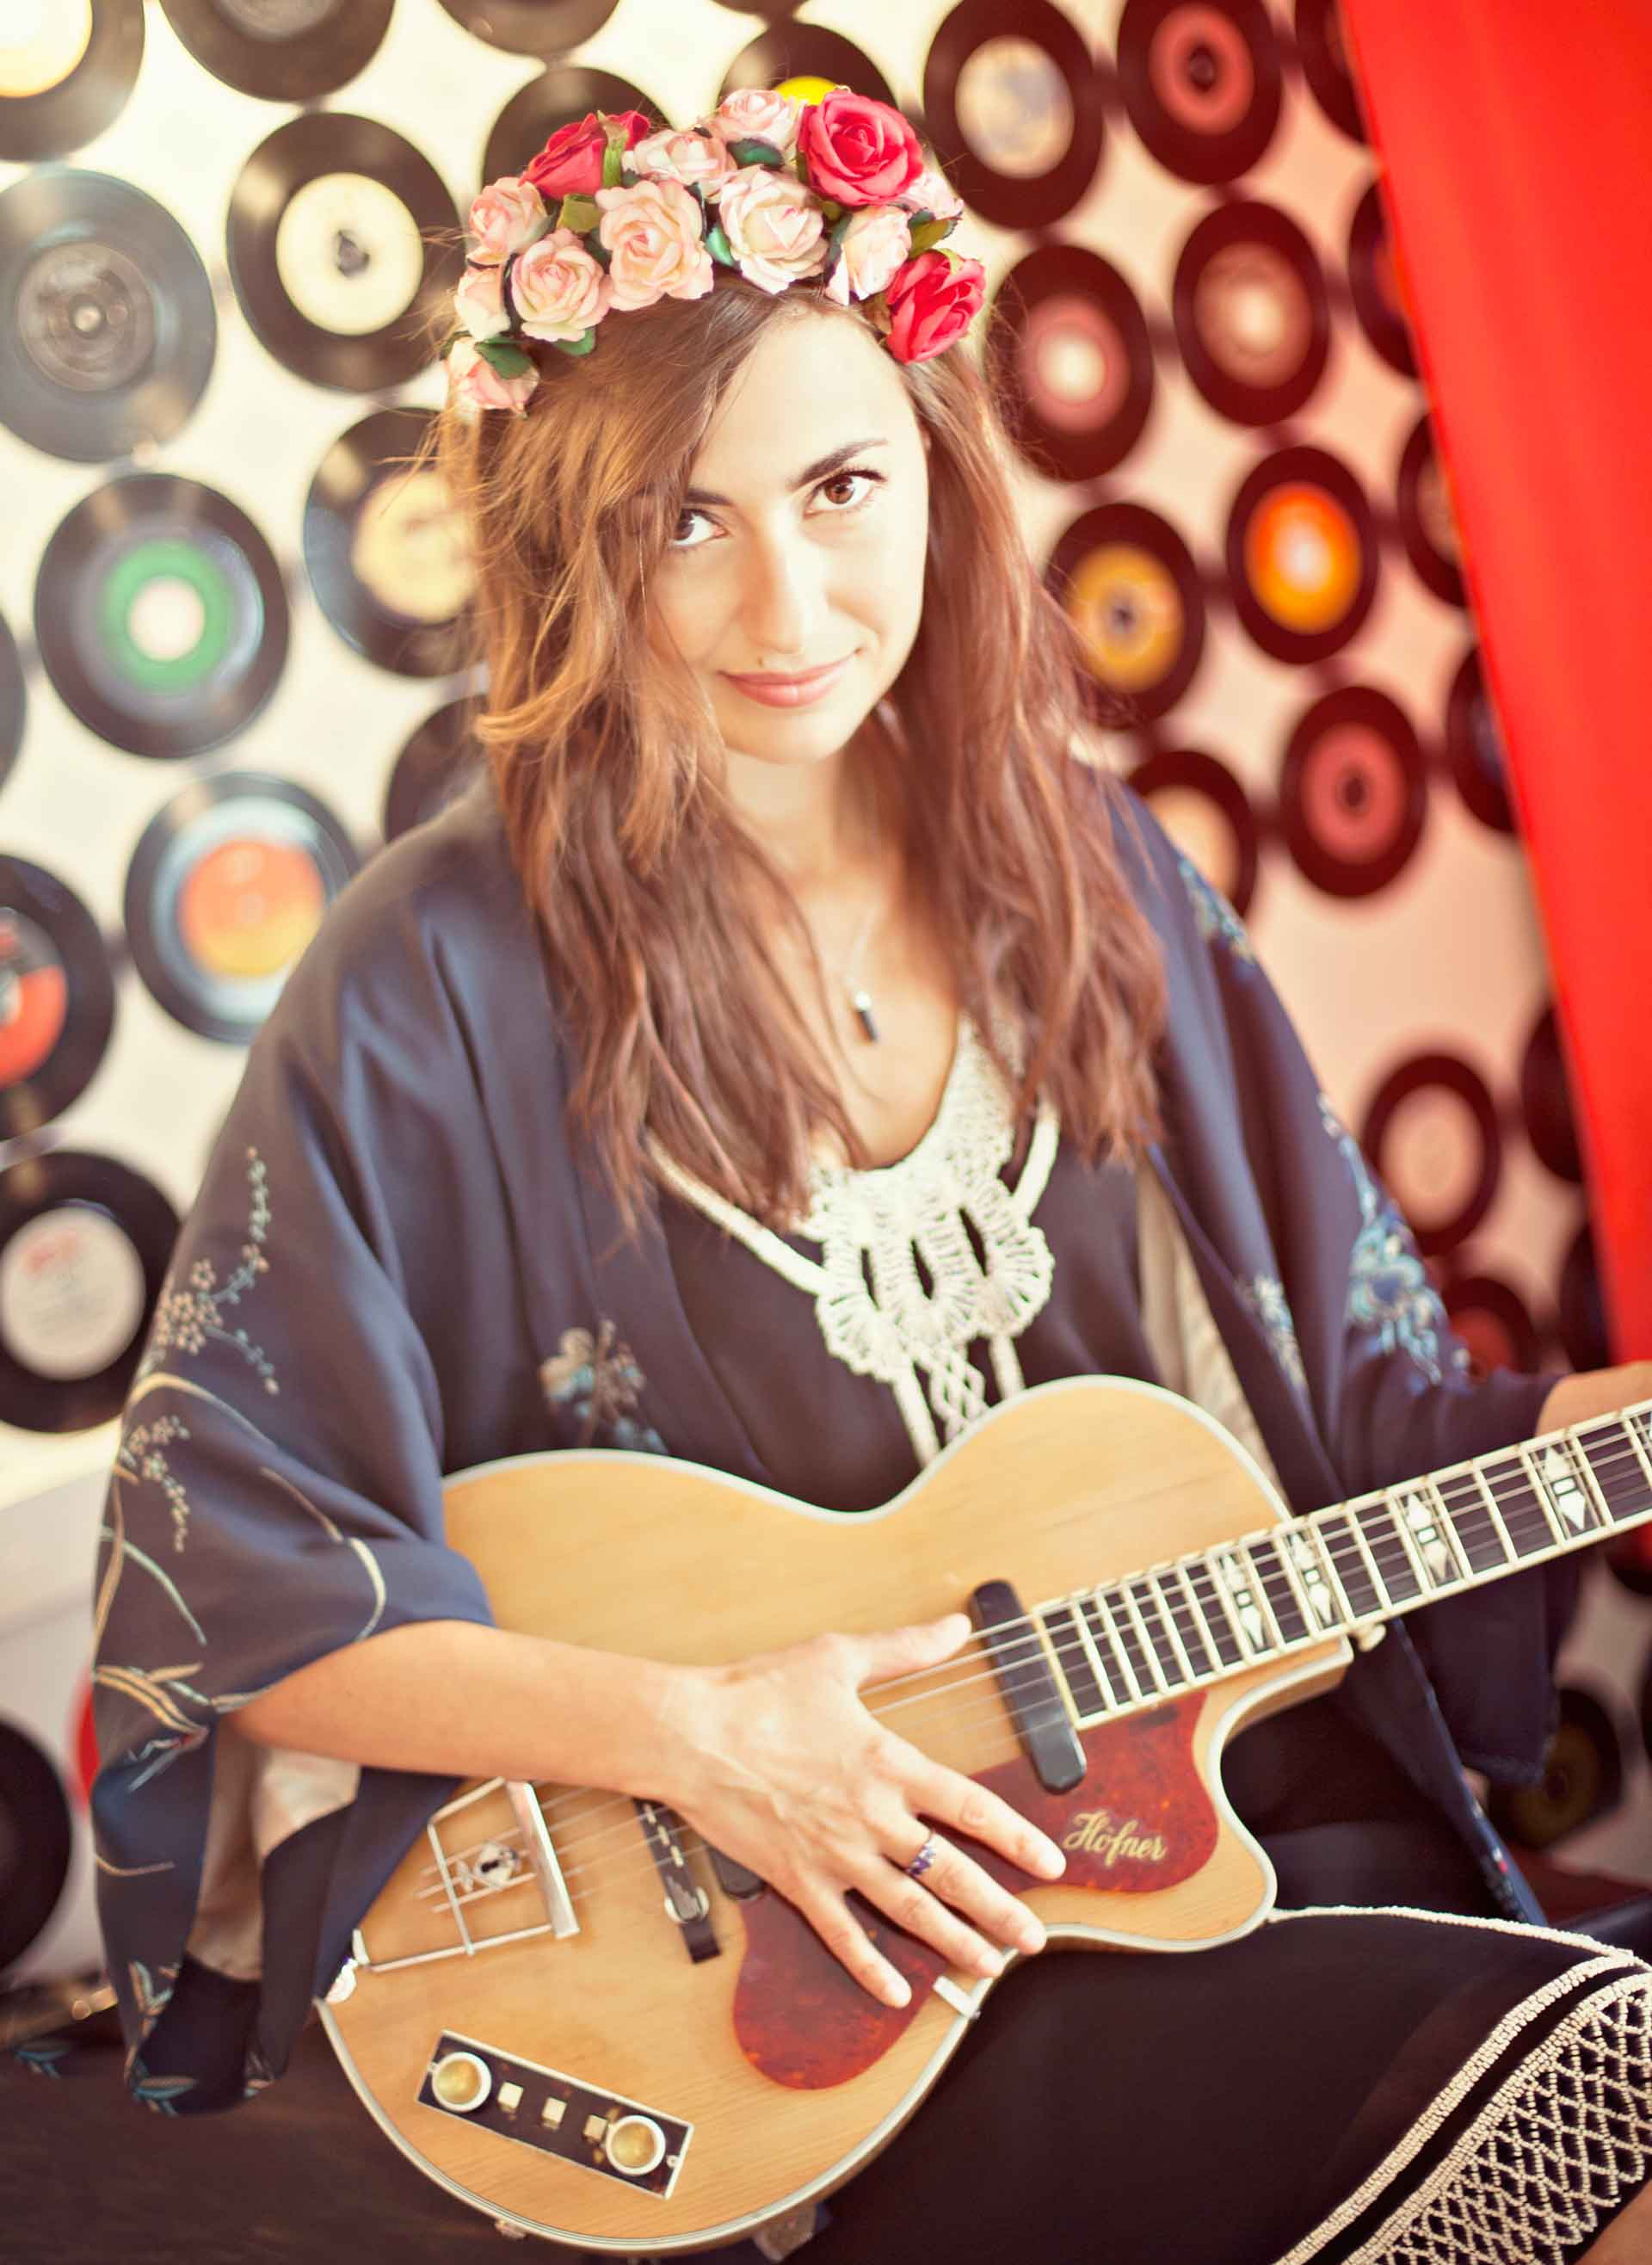 Picture of Manchester musician Zoe Kyoti with flowers in her hair holding a guitar. Copyright Zoe Kyoti - Official Site